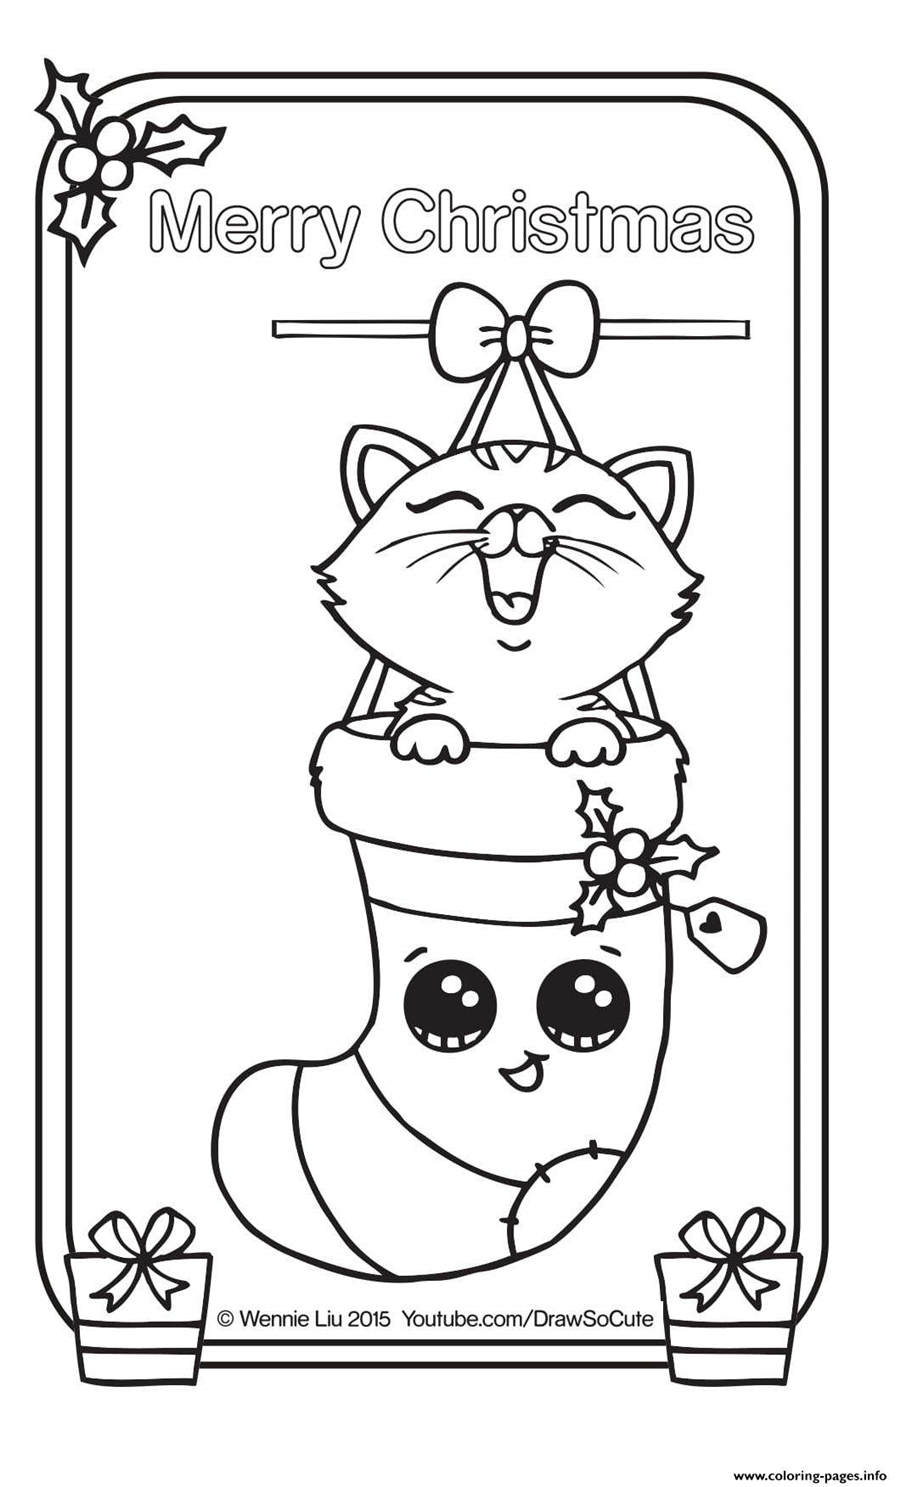 Cute Christmas Coloring Pages Printable Cute Christmas Coloring Pages Card Kitten Sketch Free